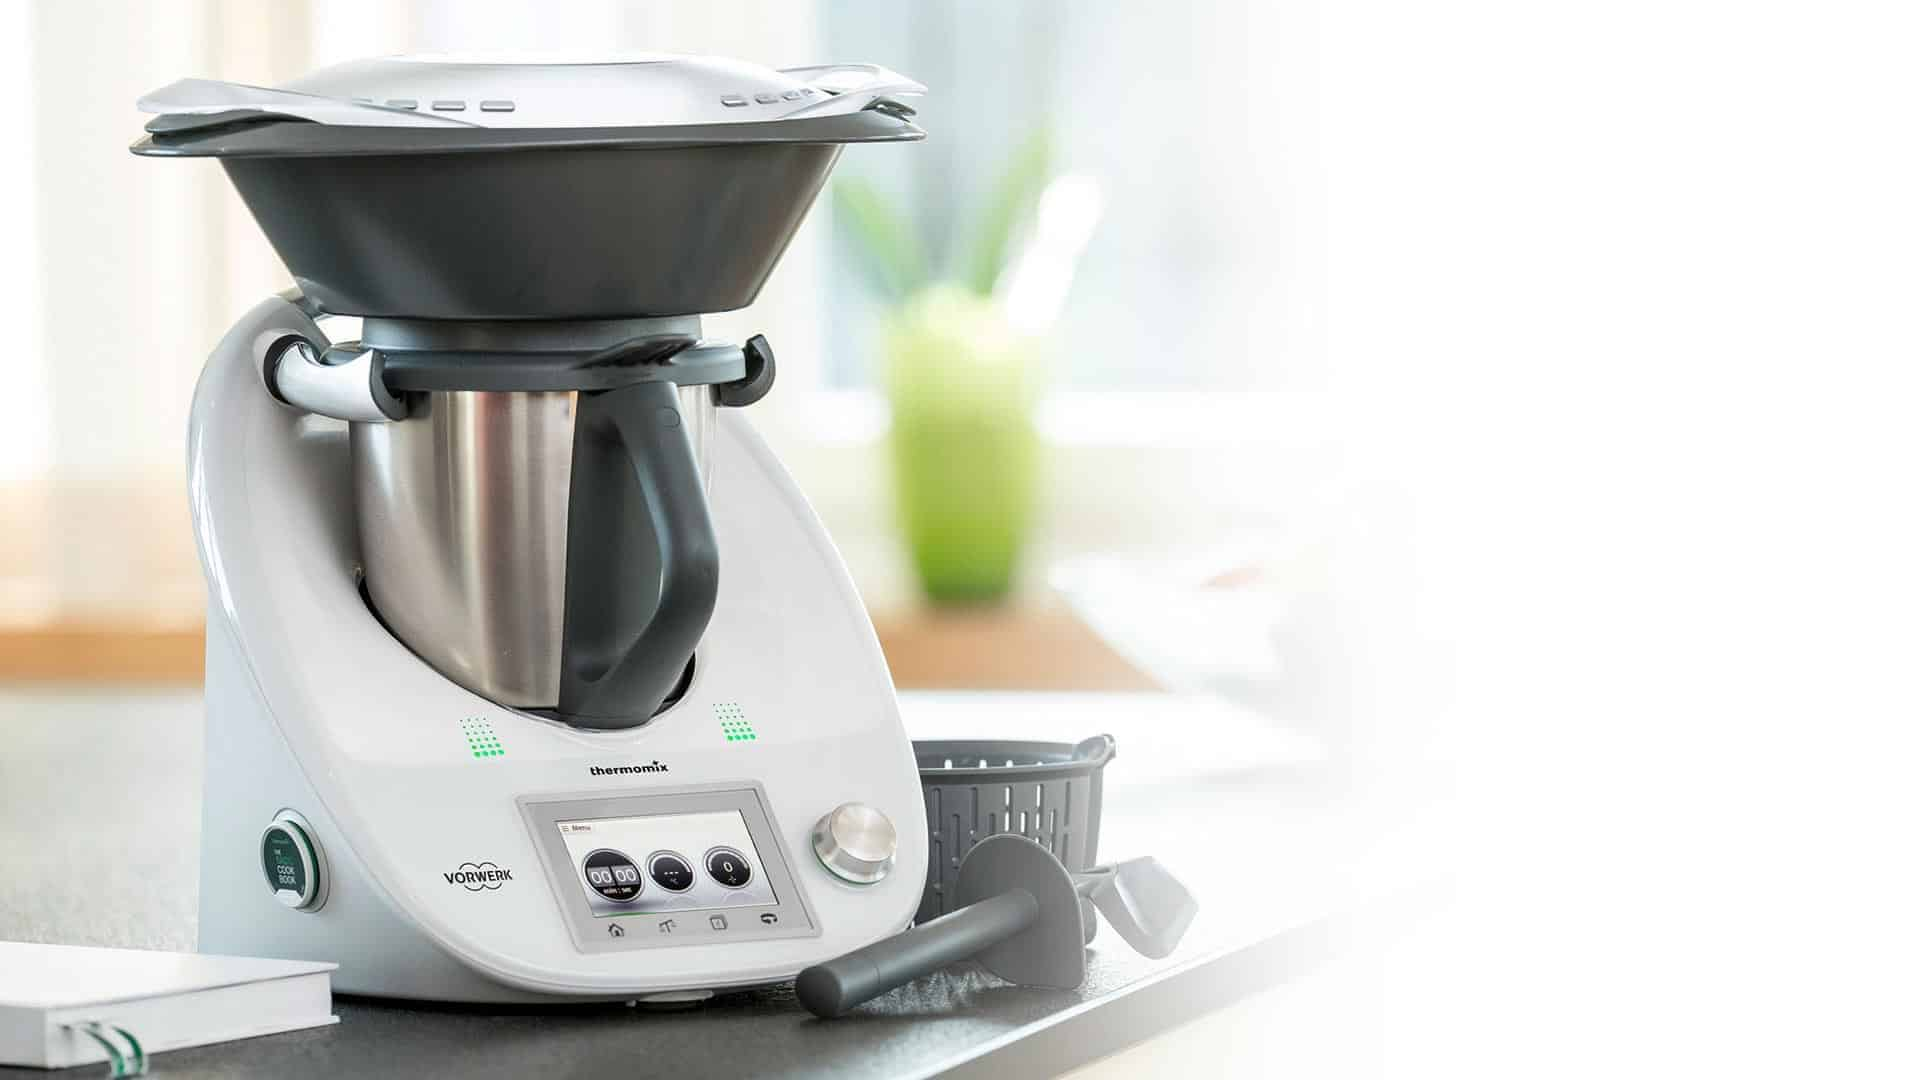 The Benefits of Owning a Thermomix